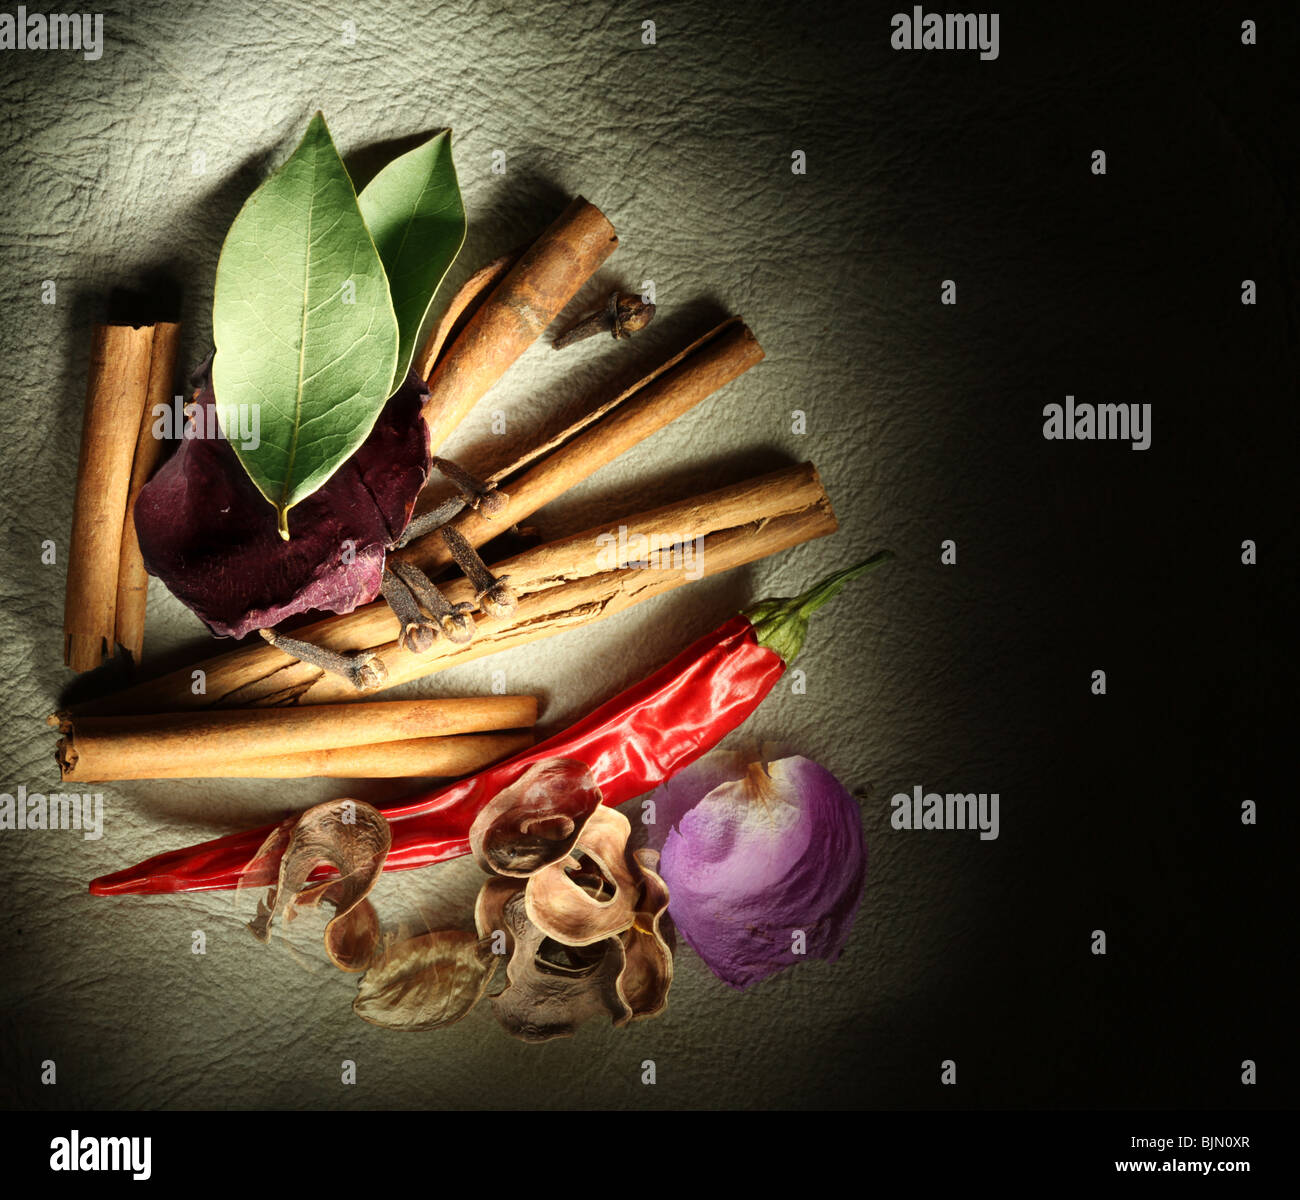 Texture background skins with dried spices - Stock Image